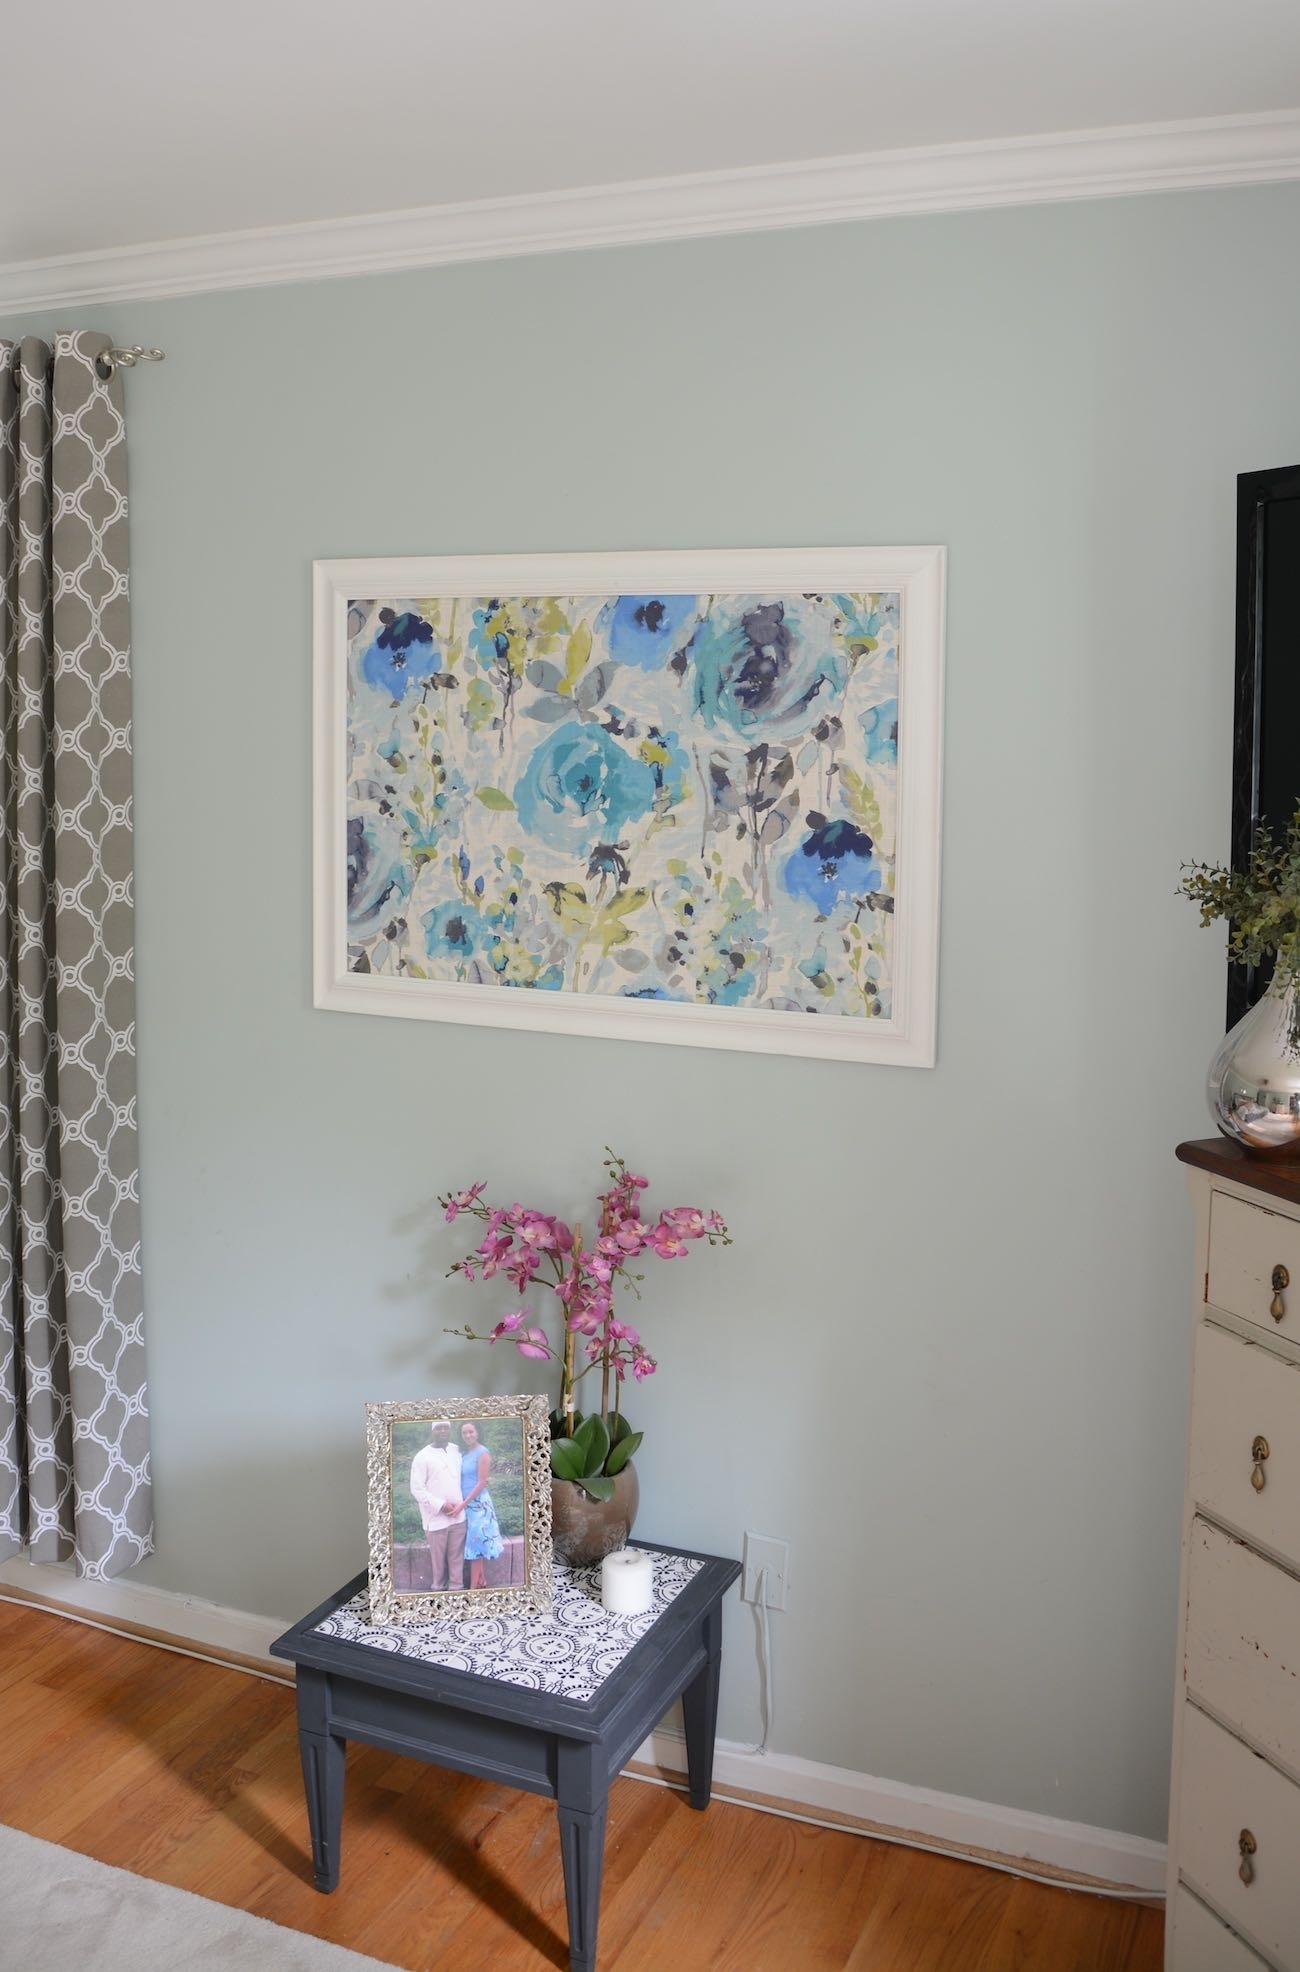 How To Frame Fabric For Wall Art With A Picture Frame Within Newest Fabric Wall Art Frames (Gallery 6 of 15)